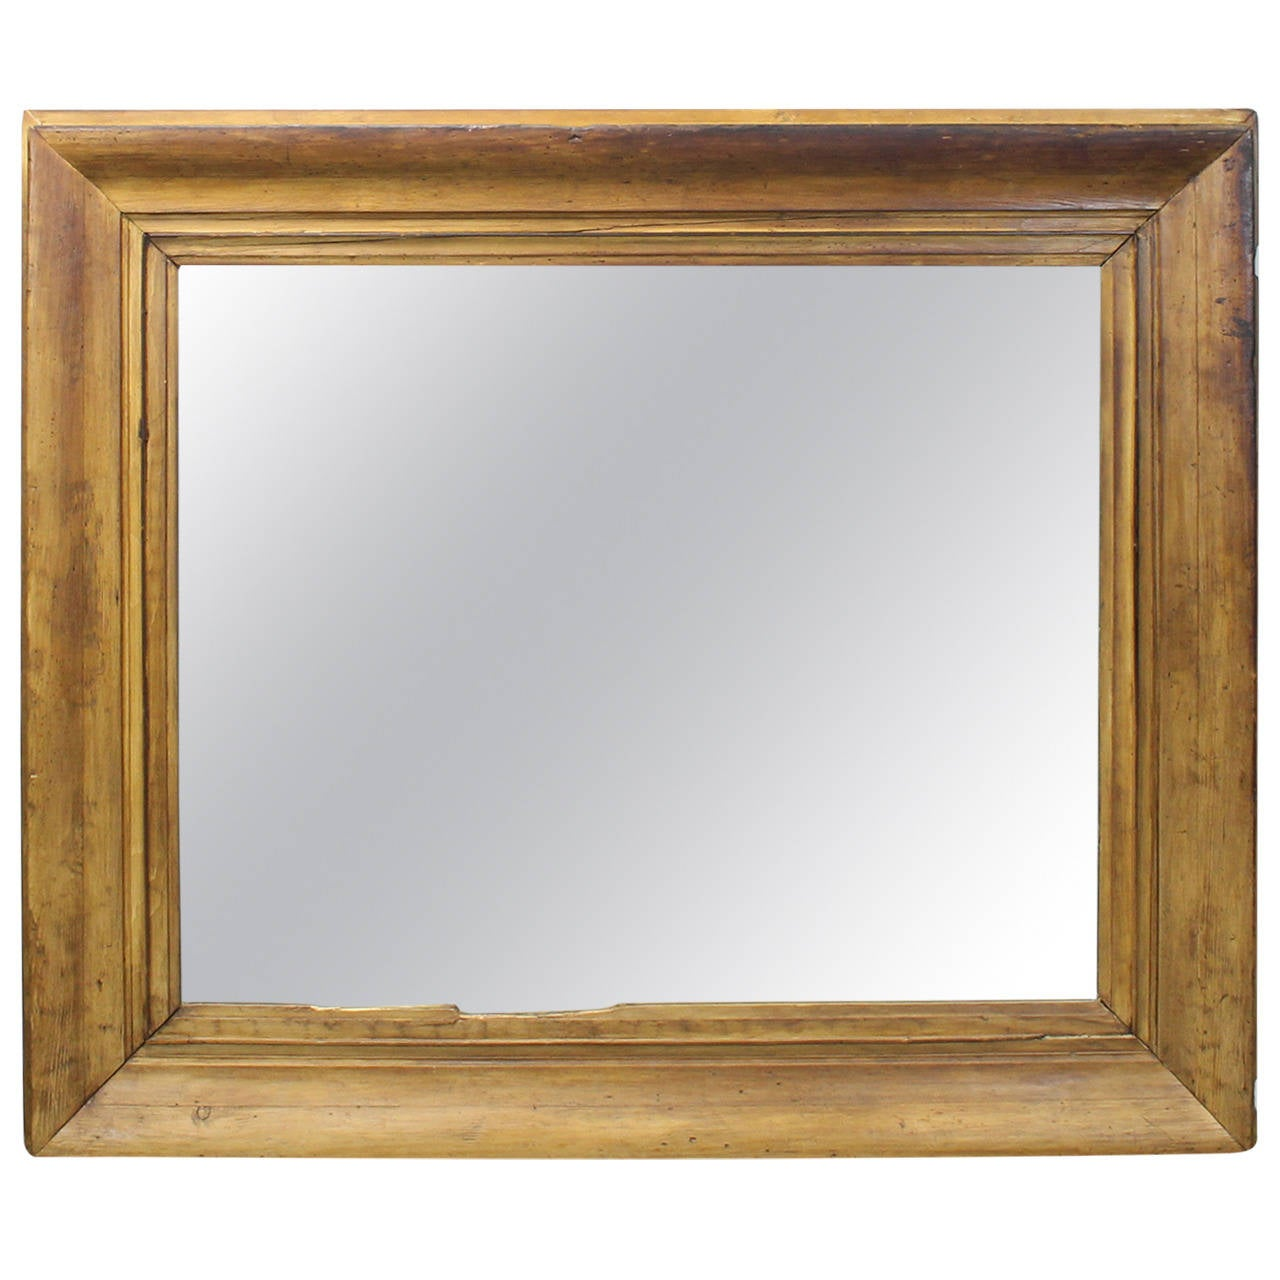 Uncategorized Large Pine Mirrors very large waxed pine mirror at 1stdibs 1